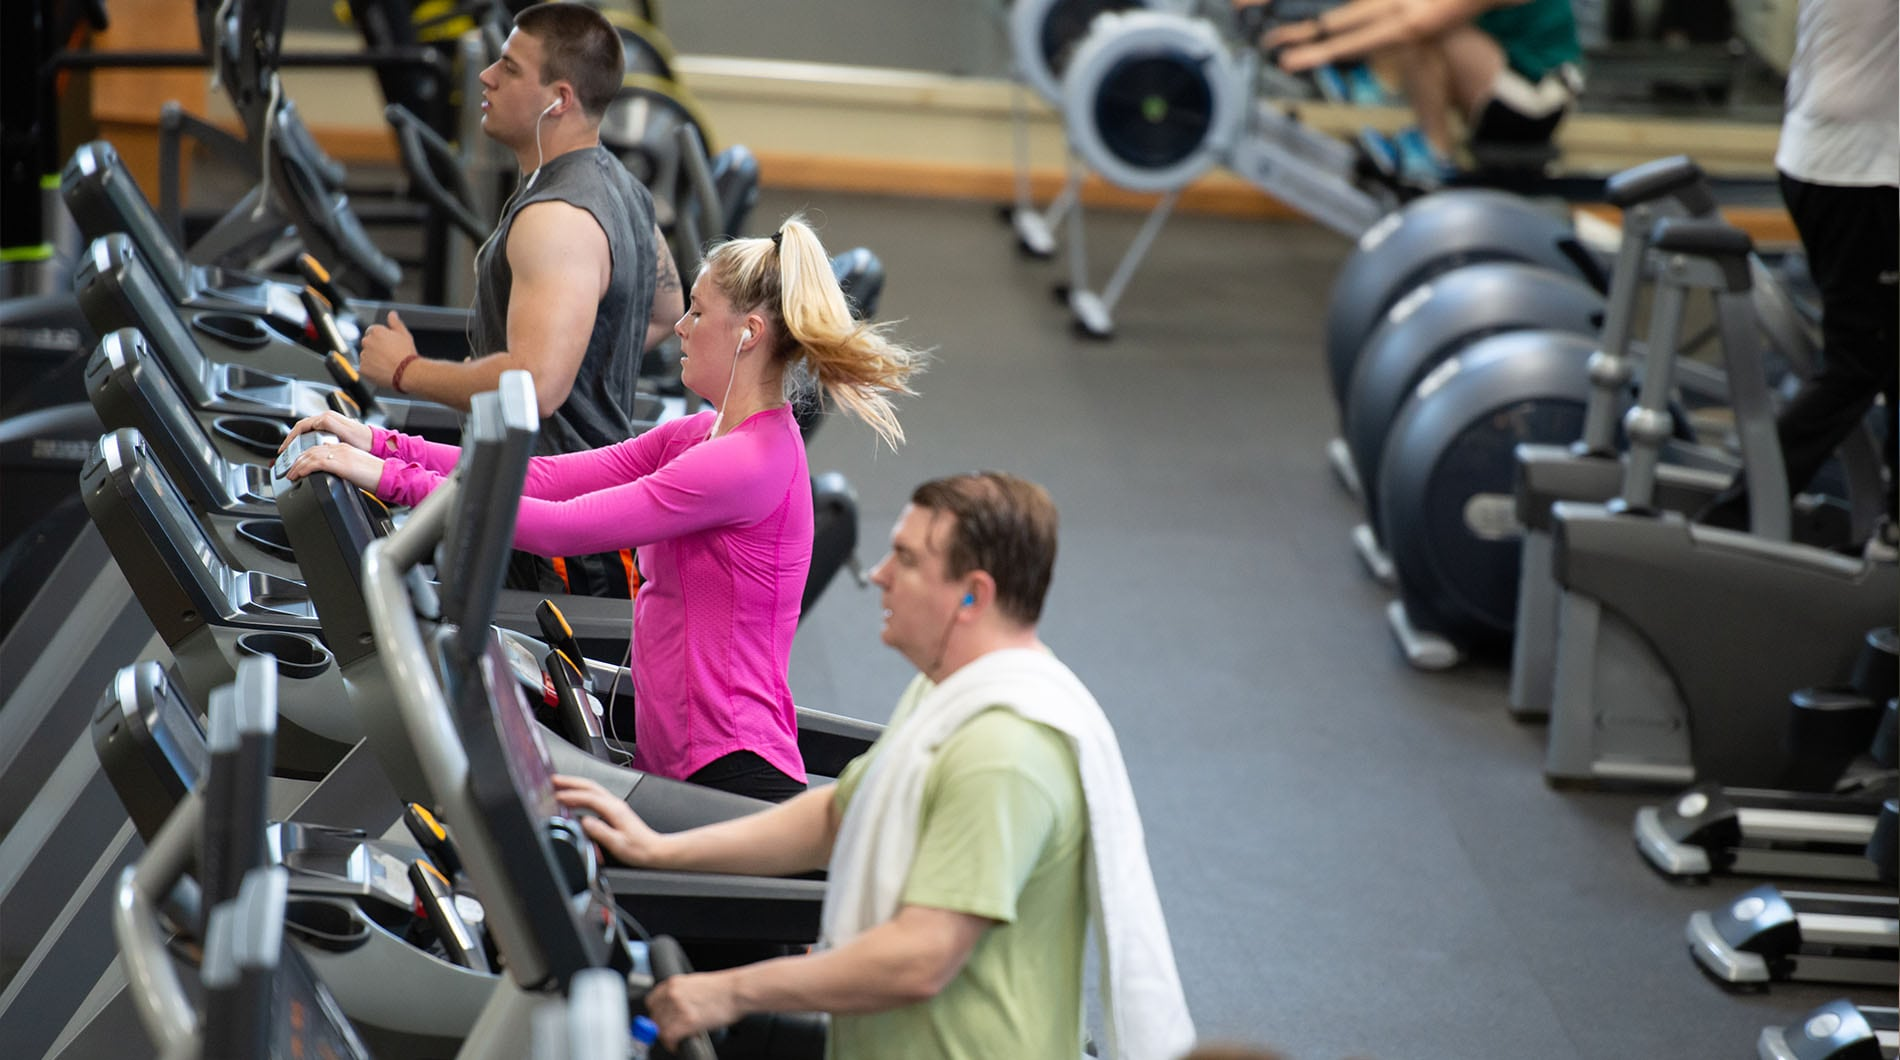 group of fit people running on treadmills